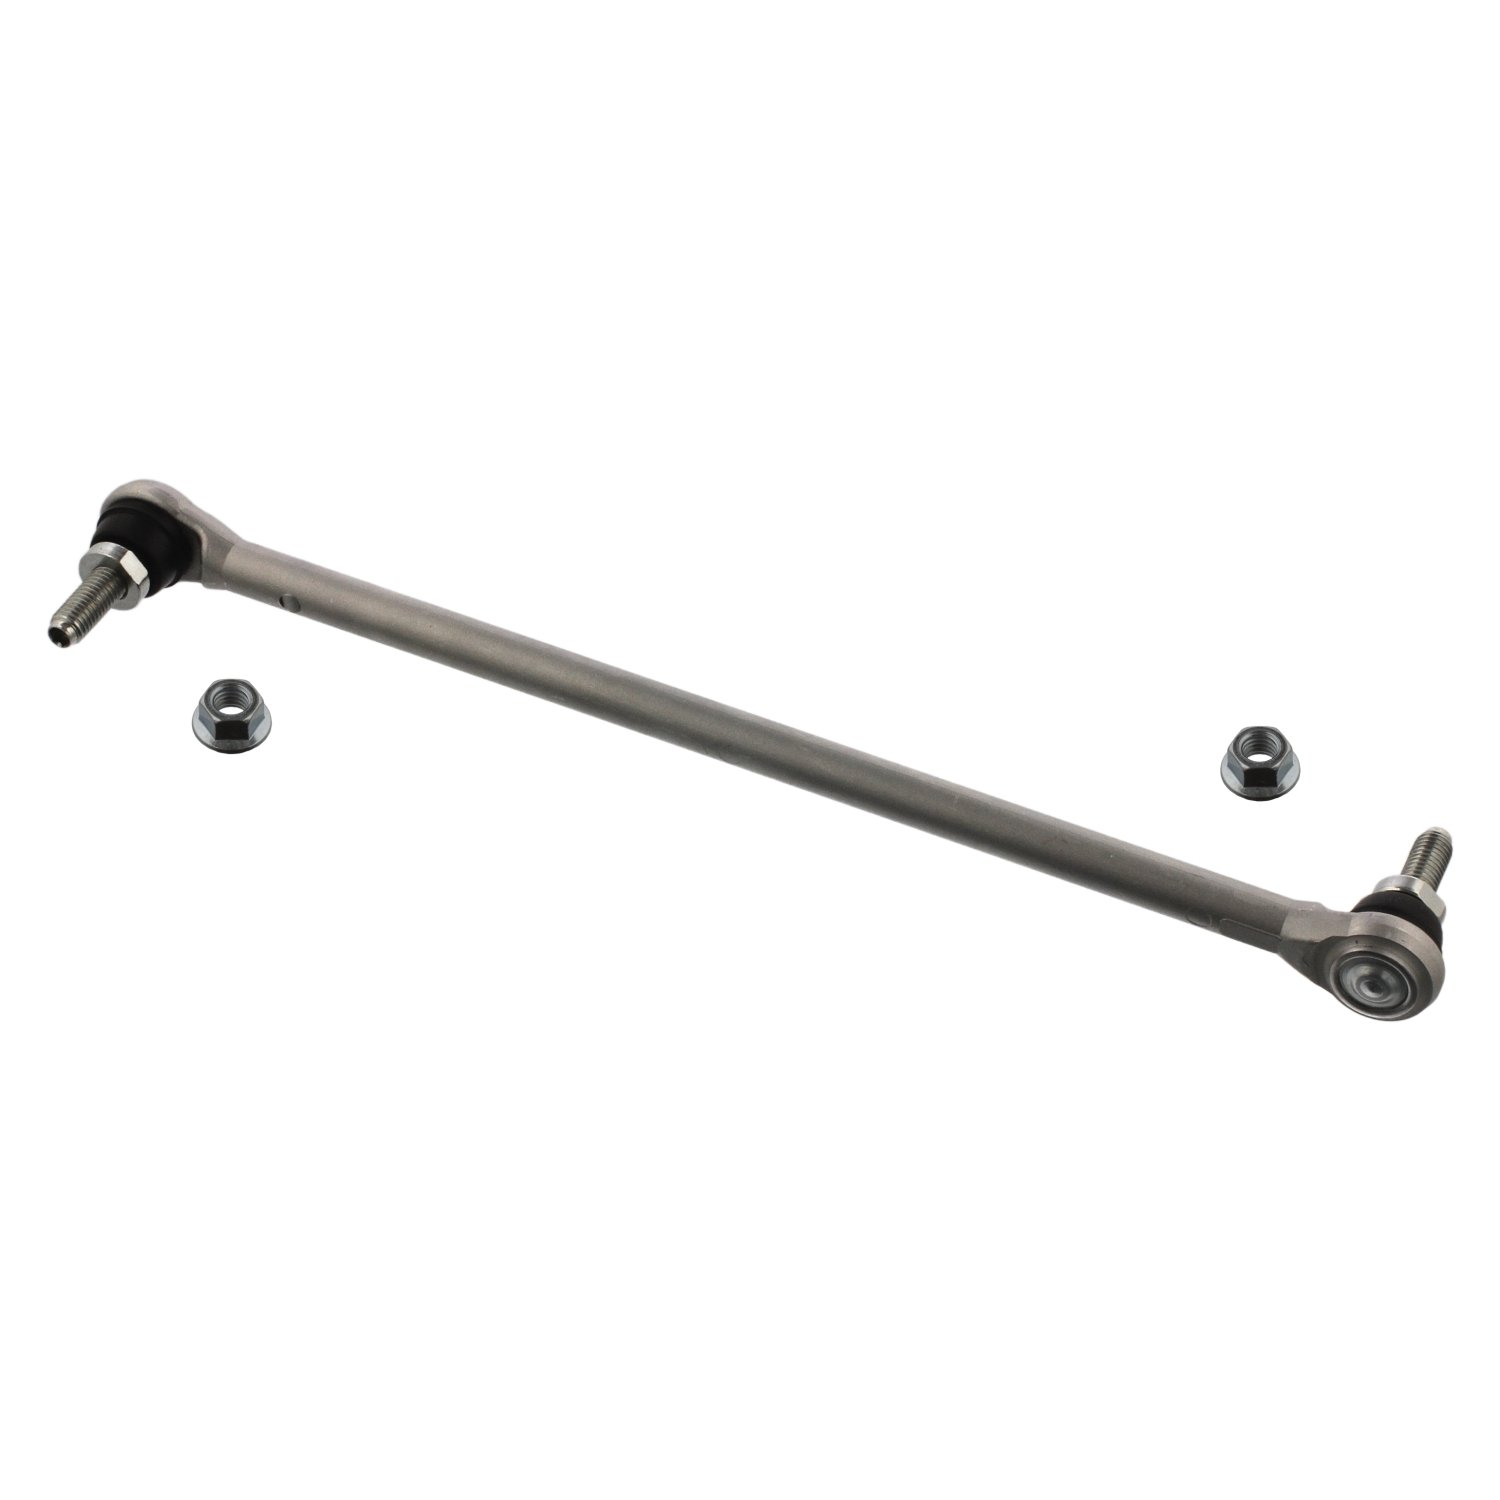 febi bilstein 36440 stabiliser link with lock nuts (front axle both sides)  - Pack of 1